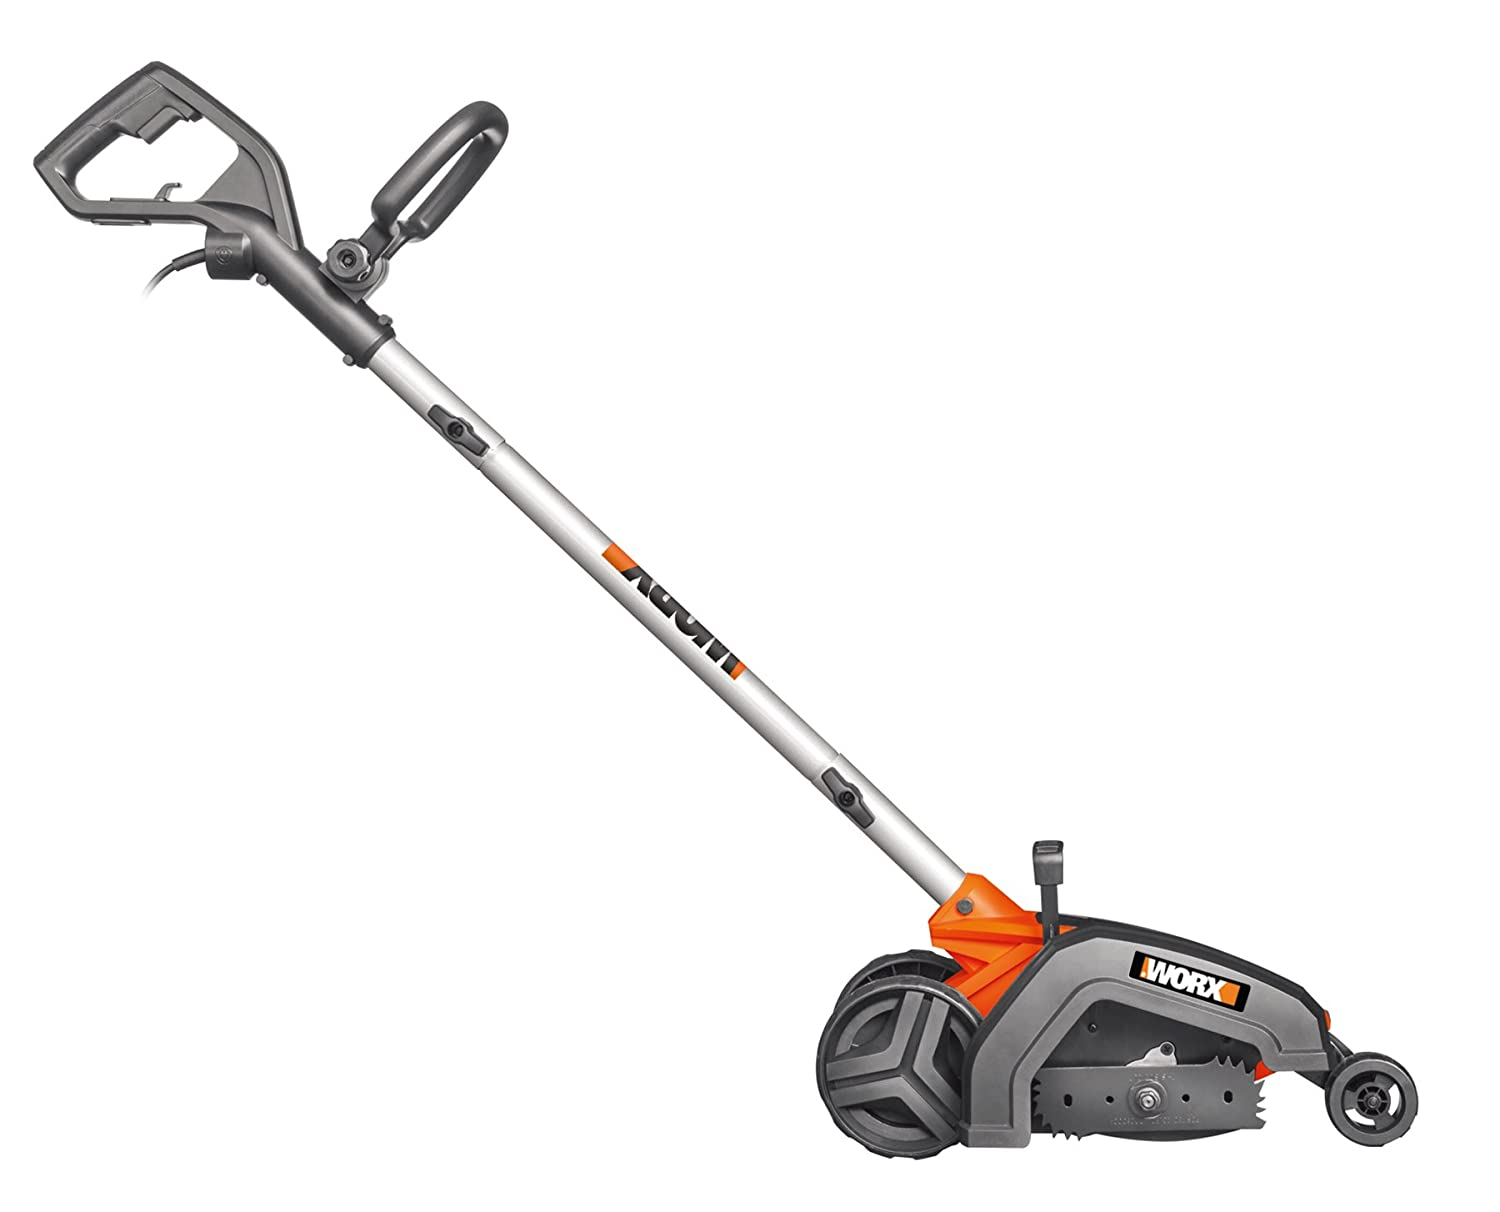 Amazon.com : WORX WG896 12 Amp 2 In 1 Electric Lawn Edger, 7.5 Inch : Garden  U0026 Outdoor